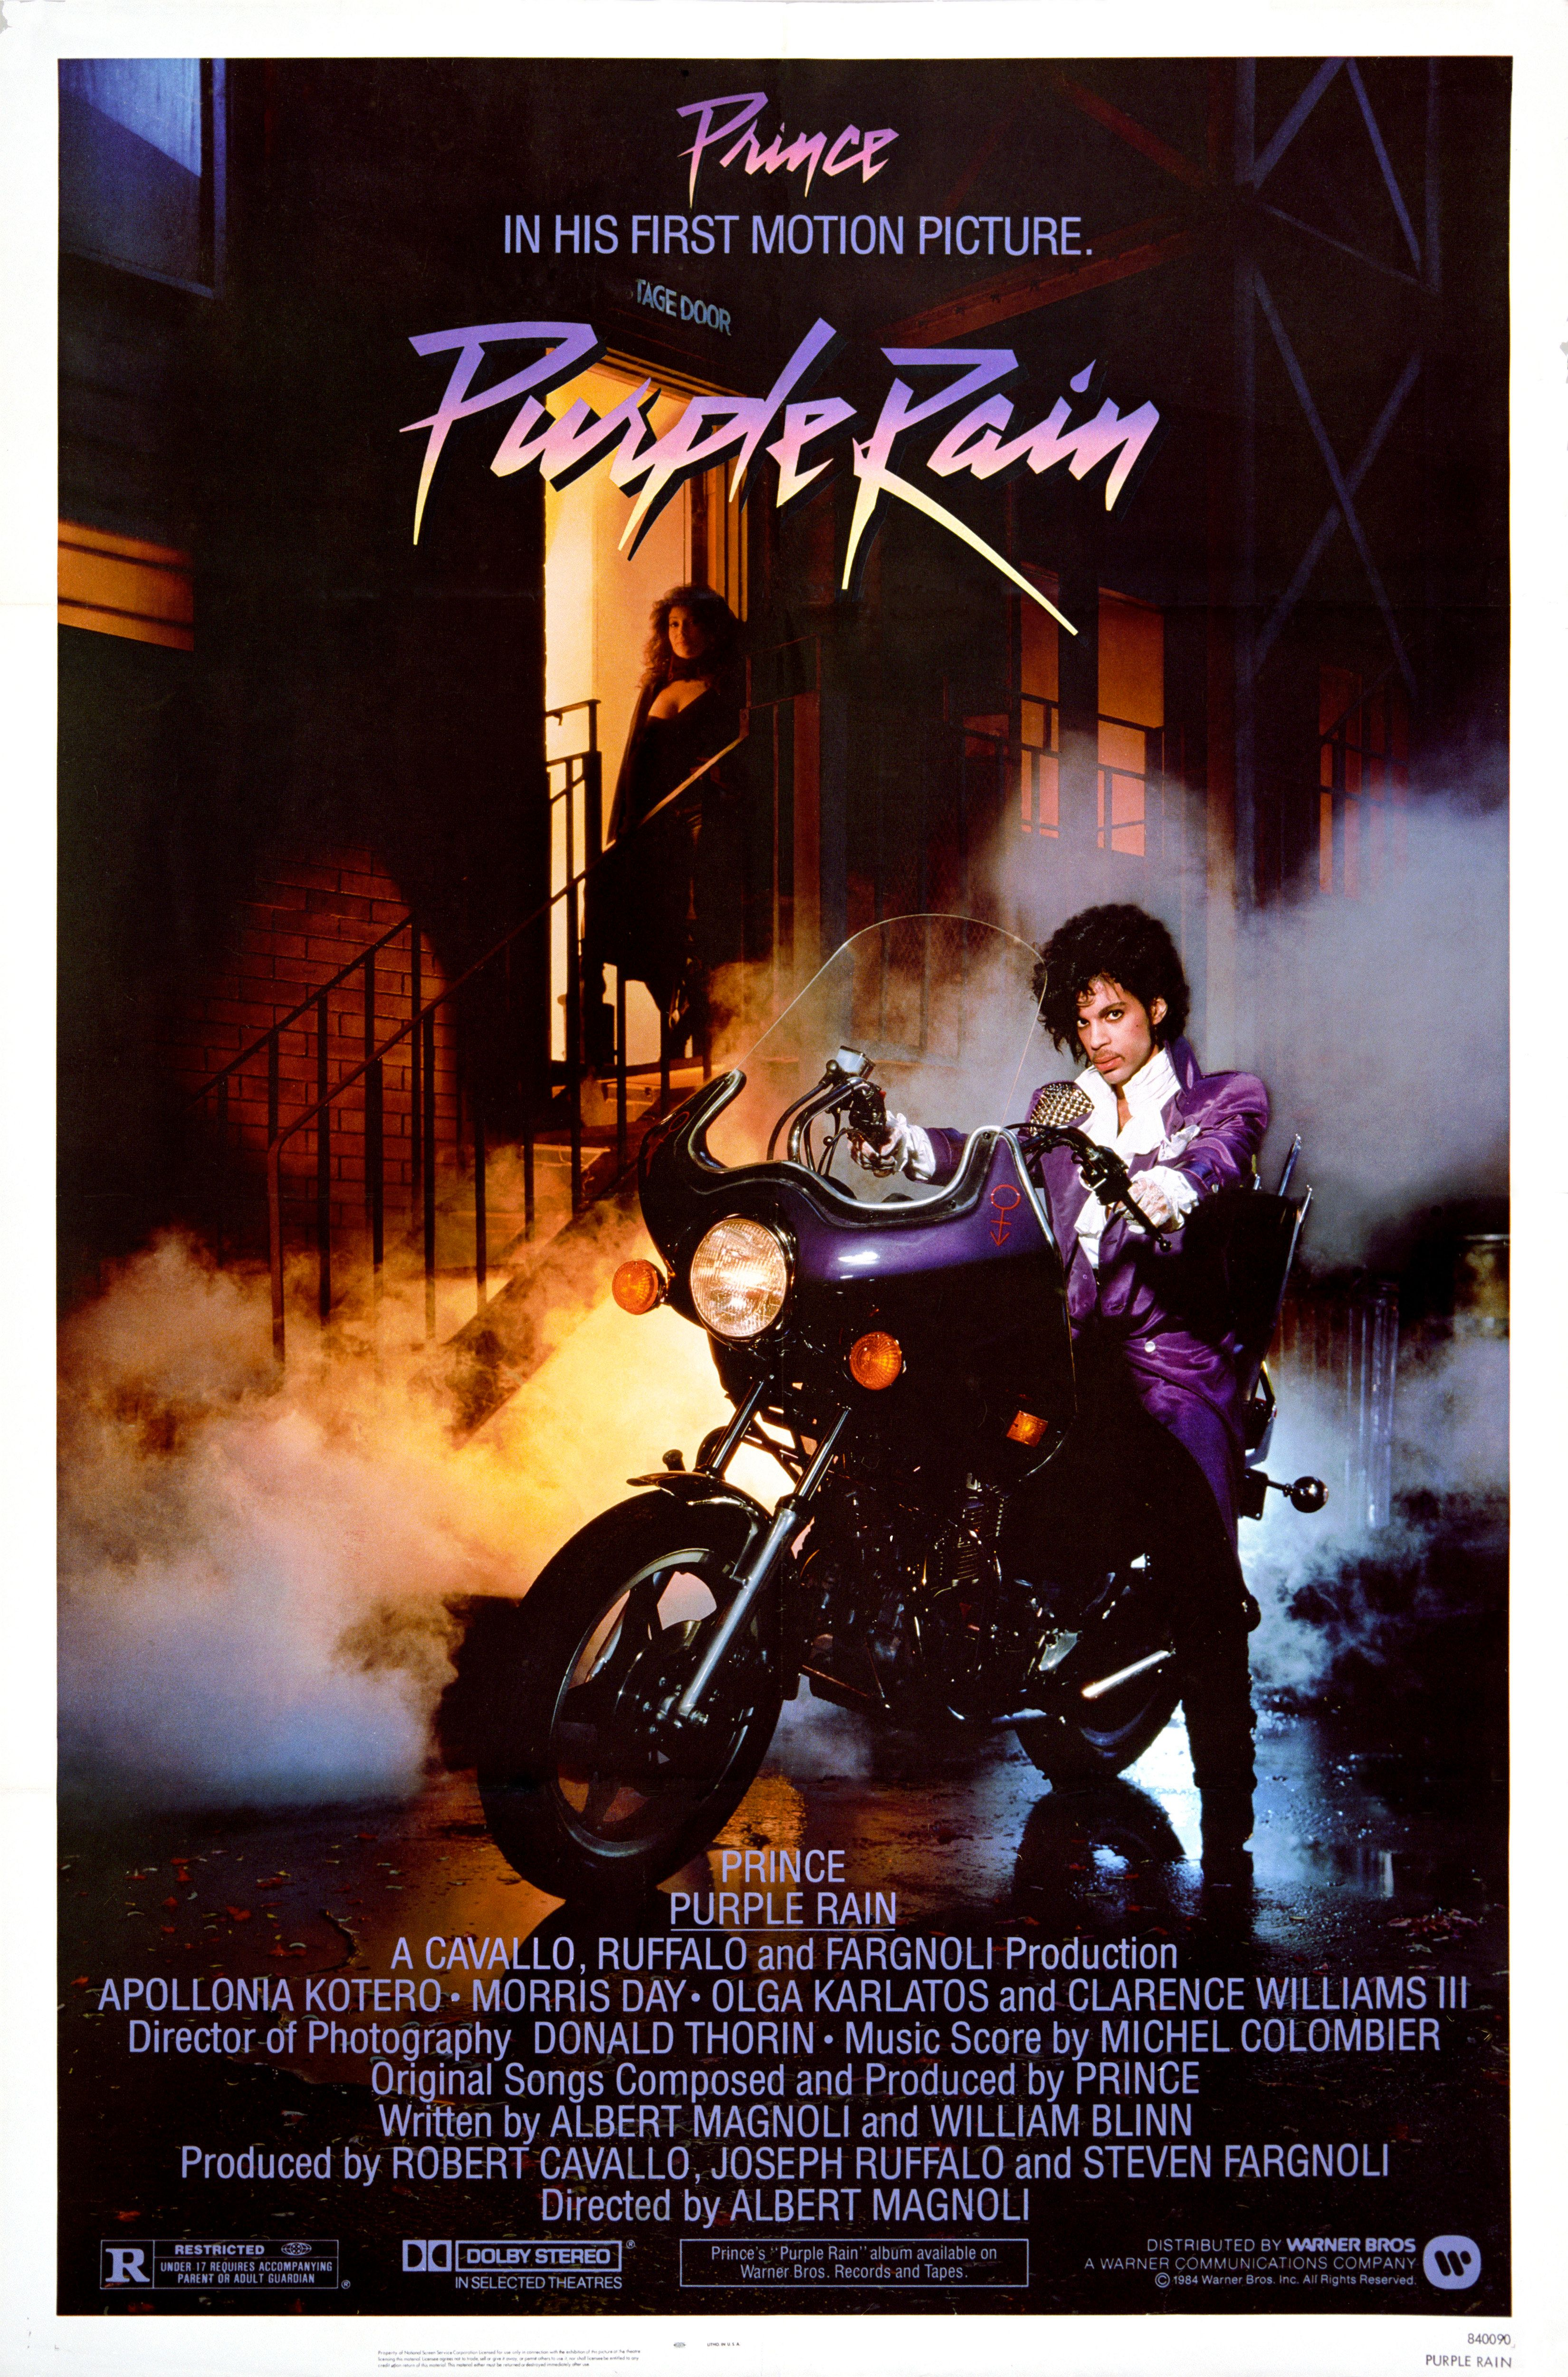 One Sheet movie poster advertises 'Purple Rain' (Warner Bros), starring Prince, Apollonia Kotero, Morris Day, and Clarence Williams III, 1984. (Photo by John D. Kisch/Separate Cinema Archive/Getty Images)